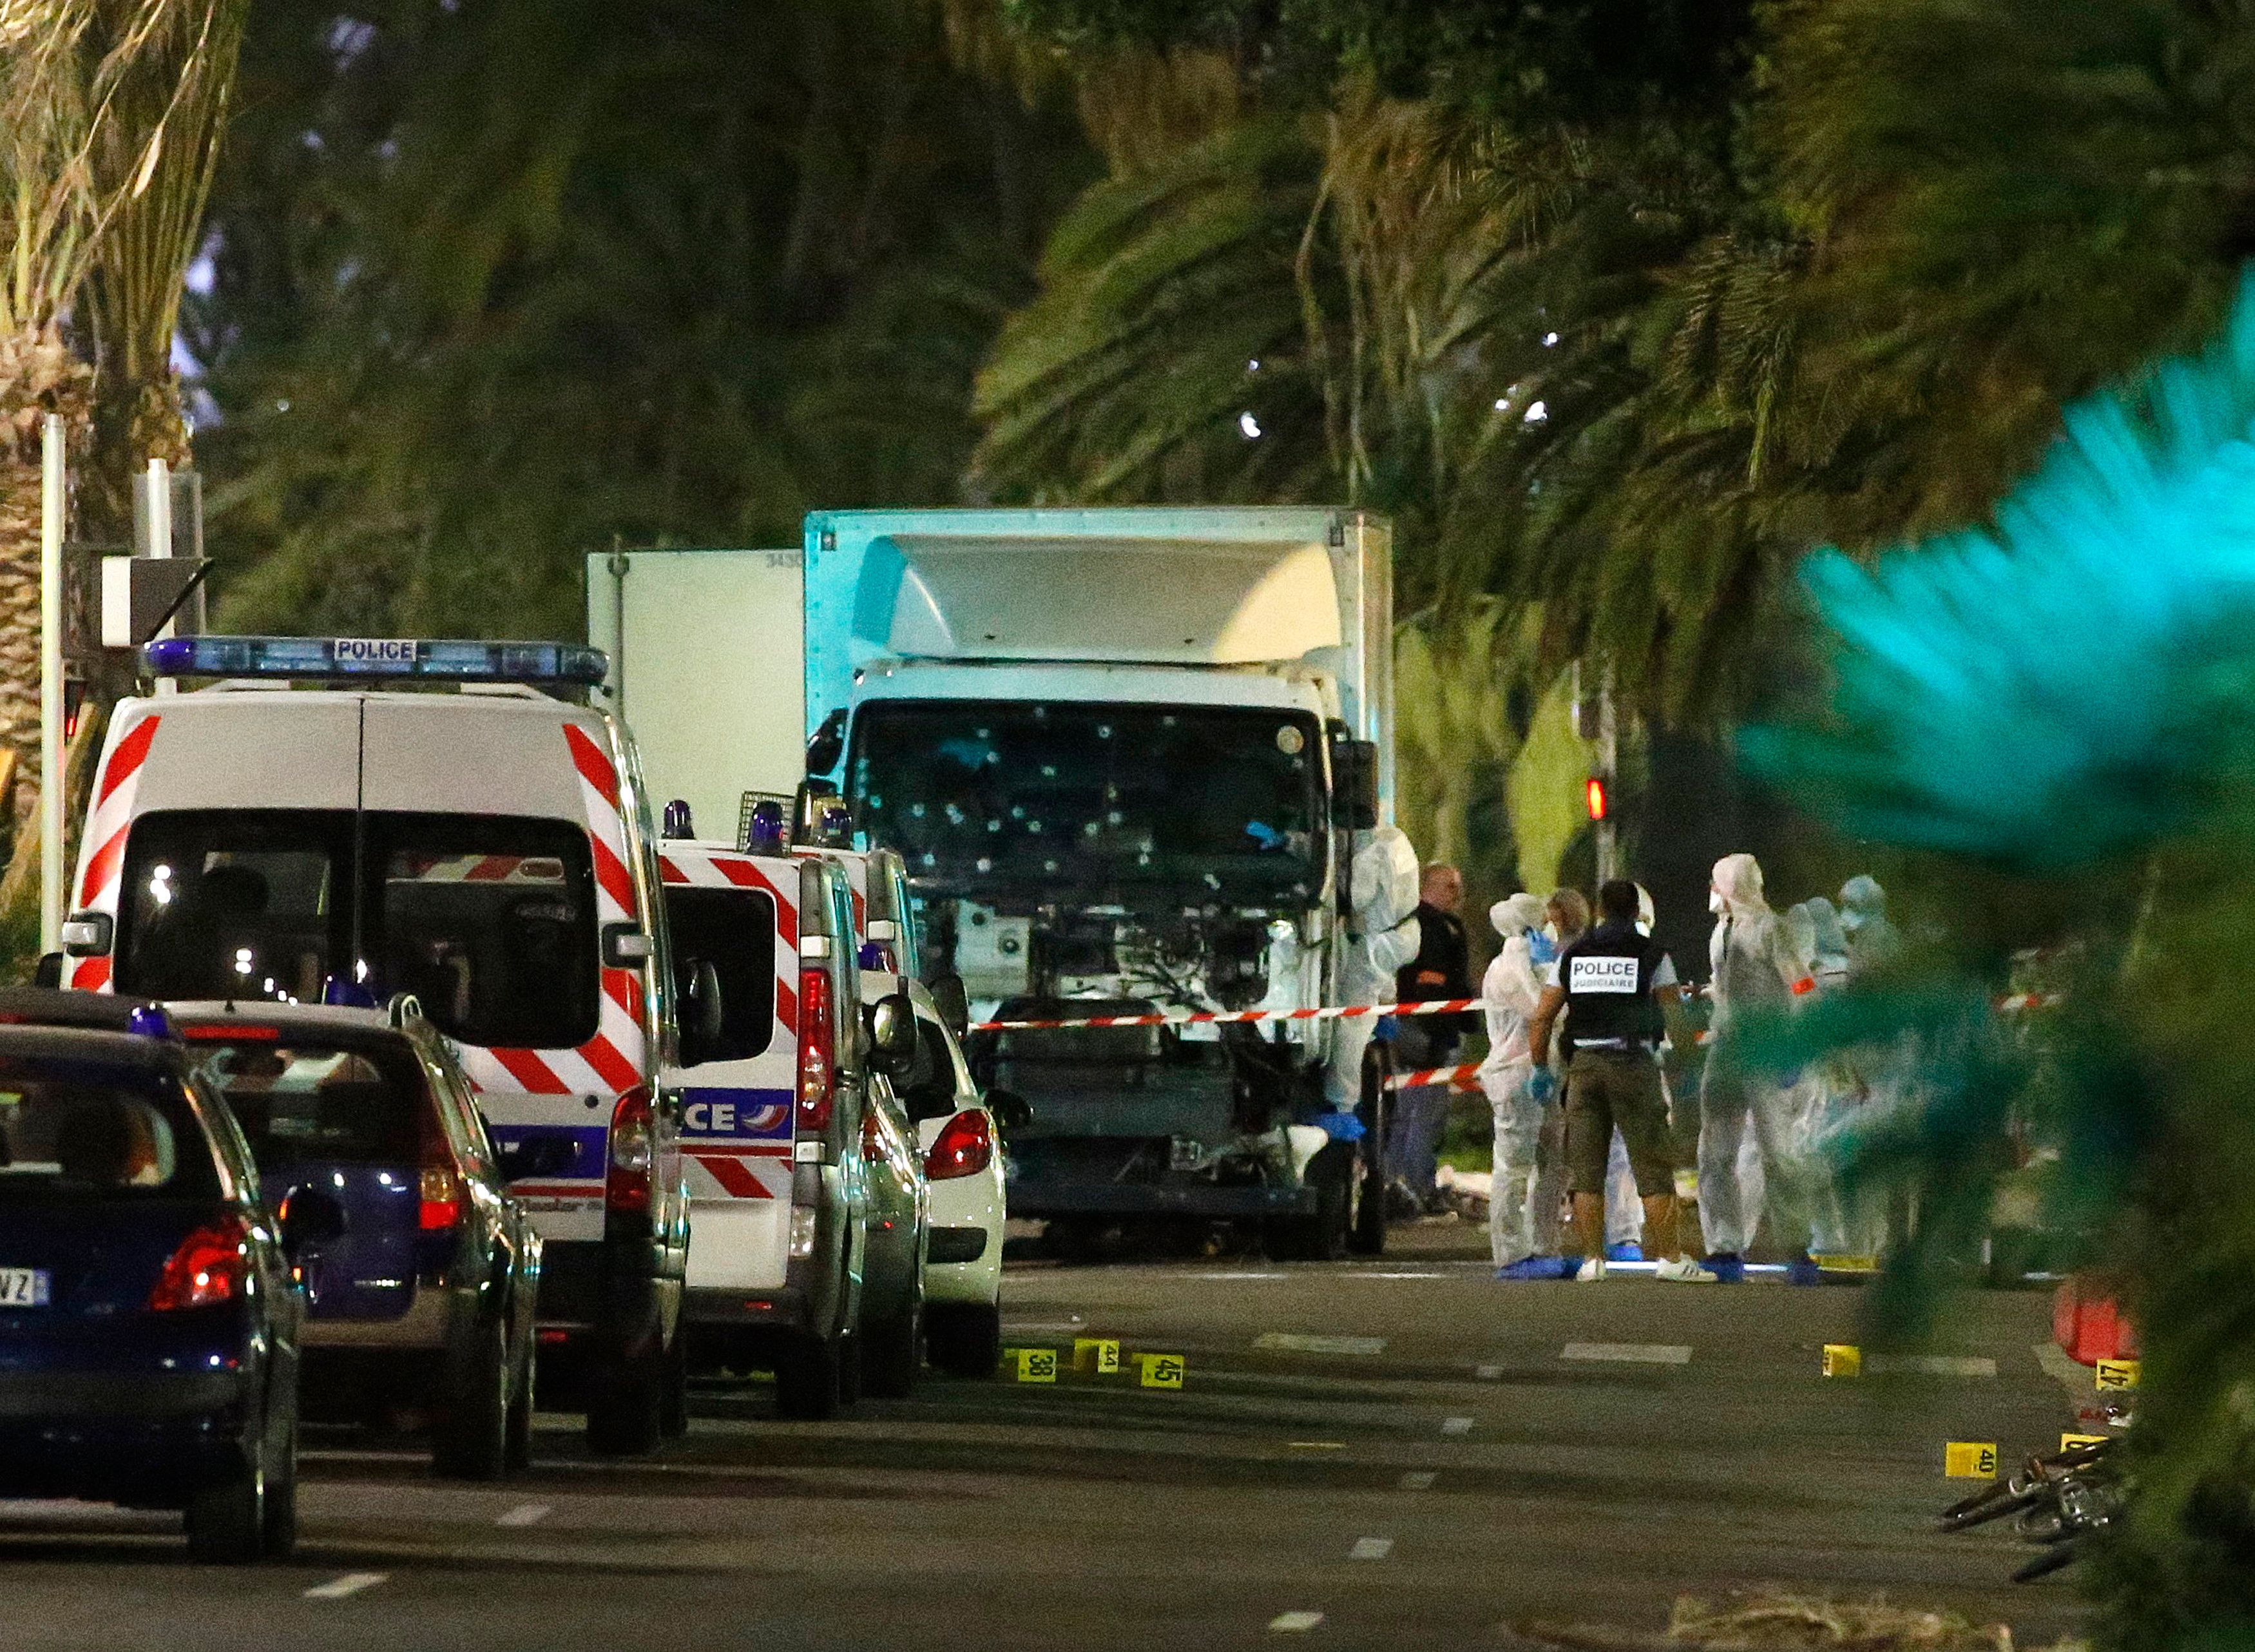 At least 84 people died in the attack on